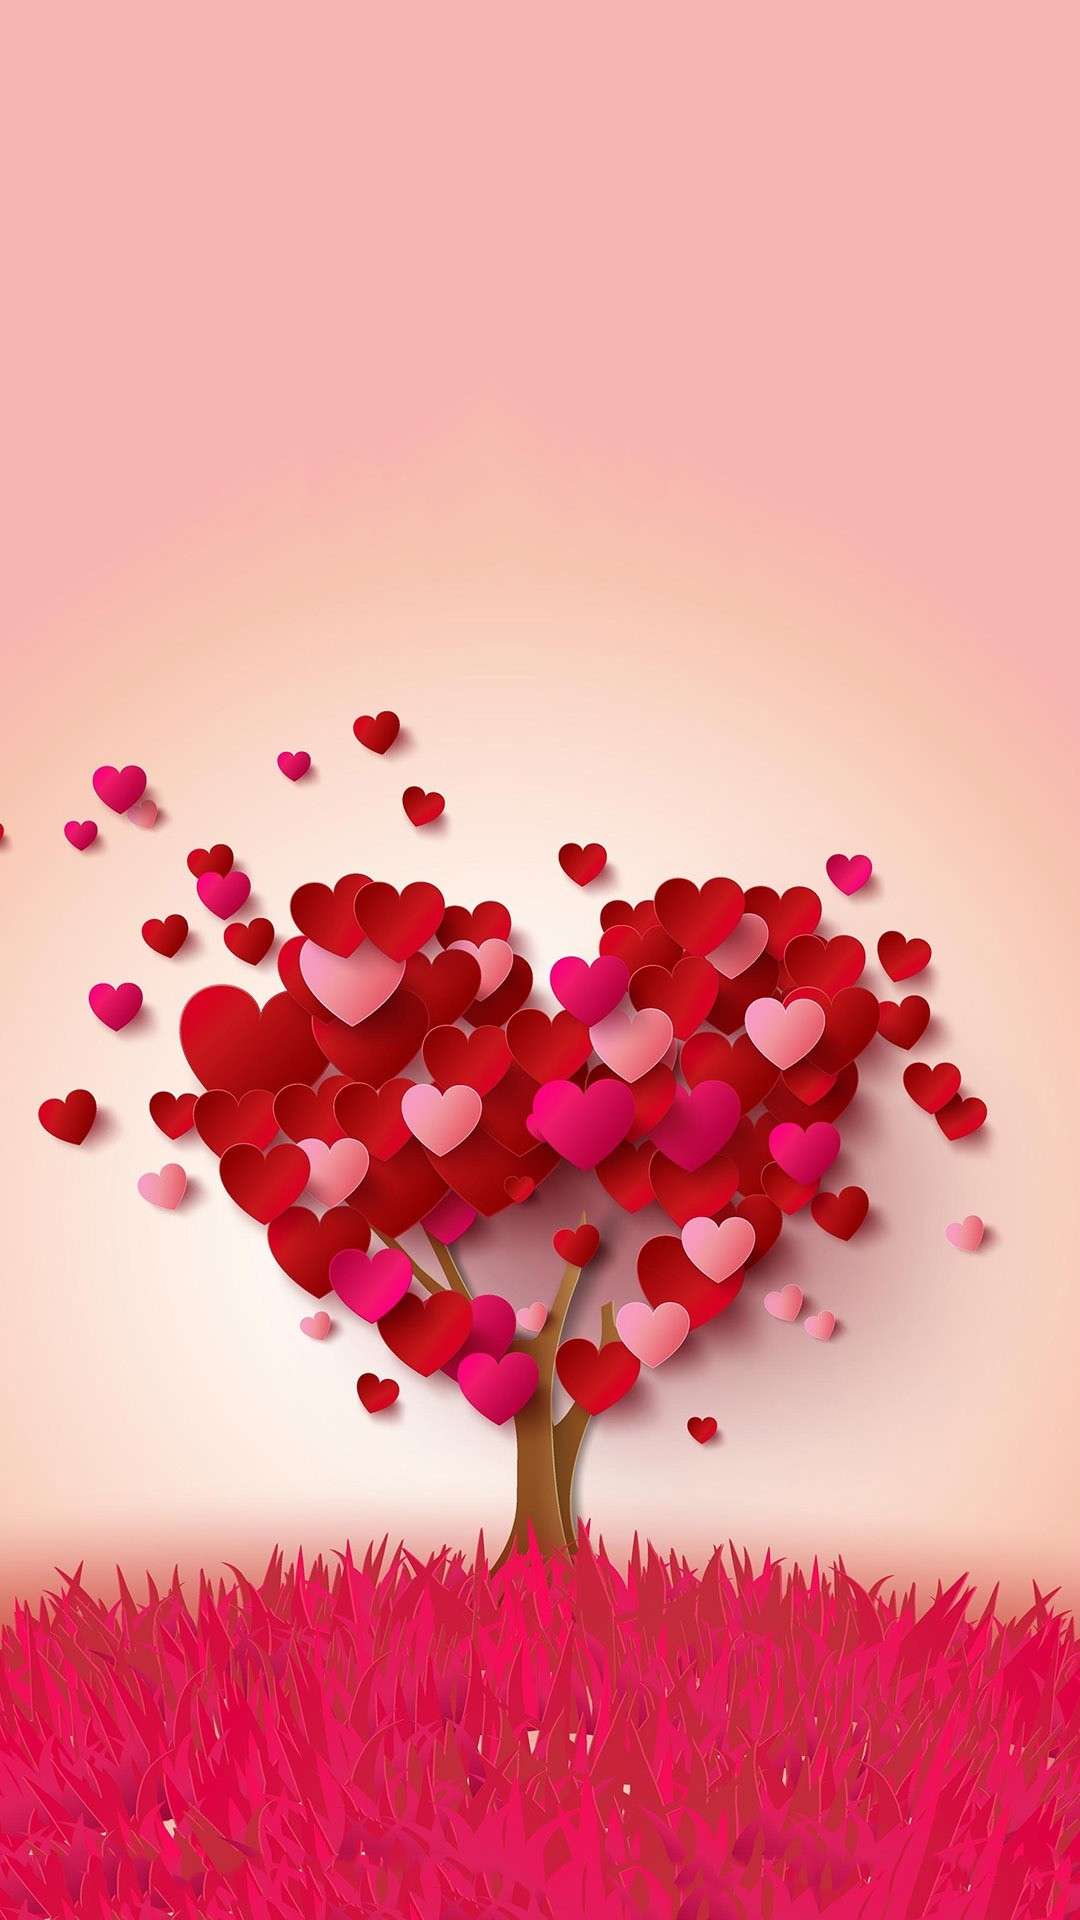 Cute Valentines Day Backgrounds 62 images 1080x1920